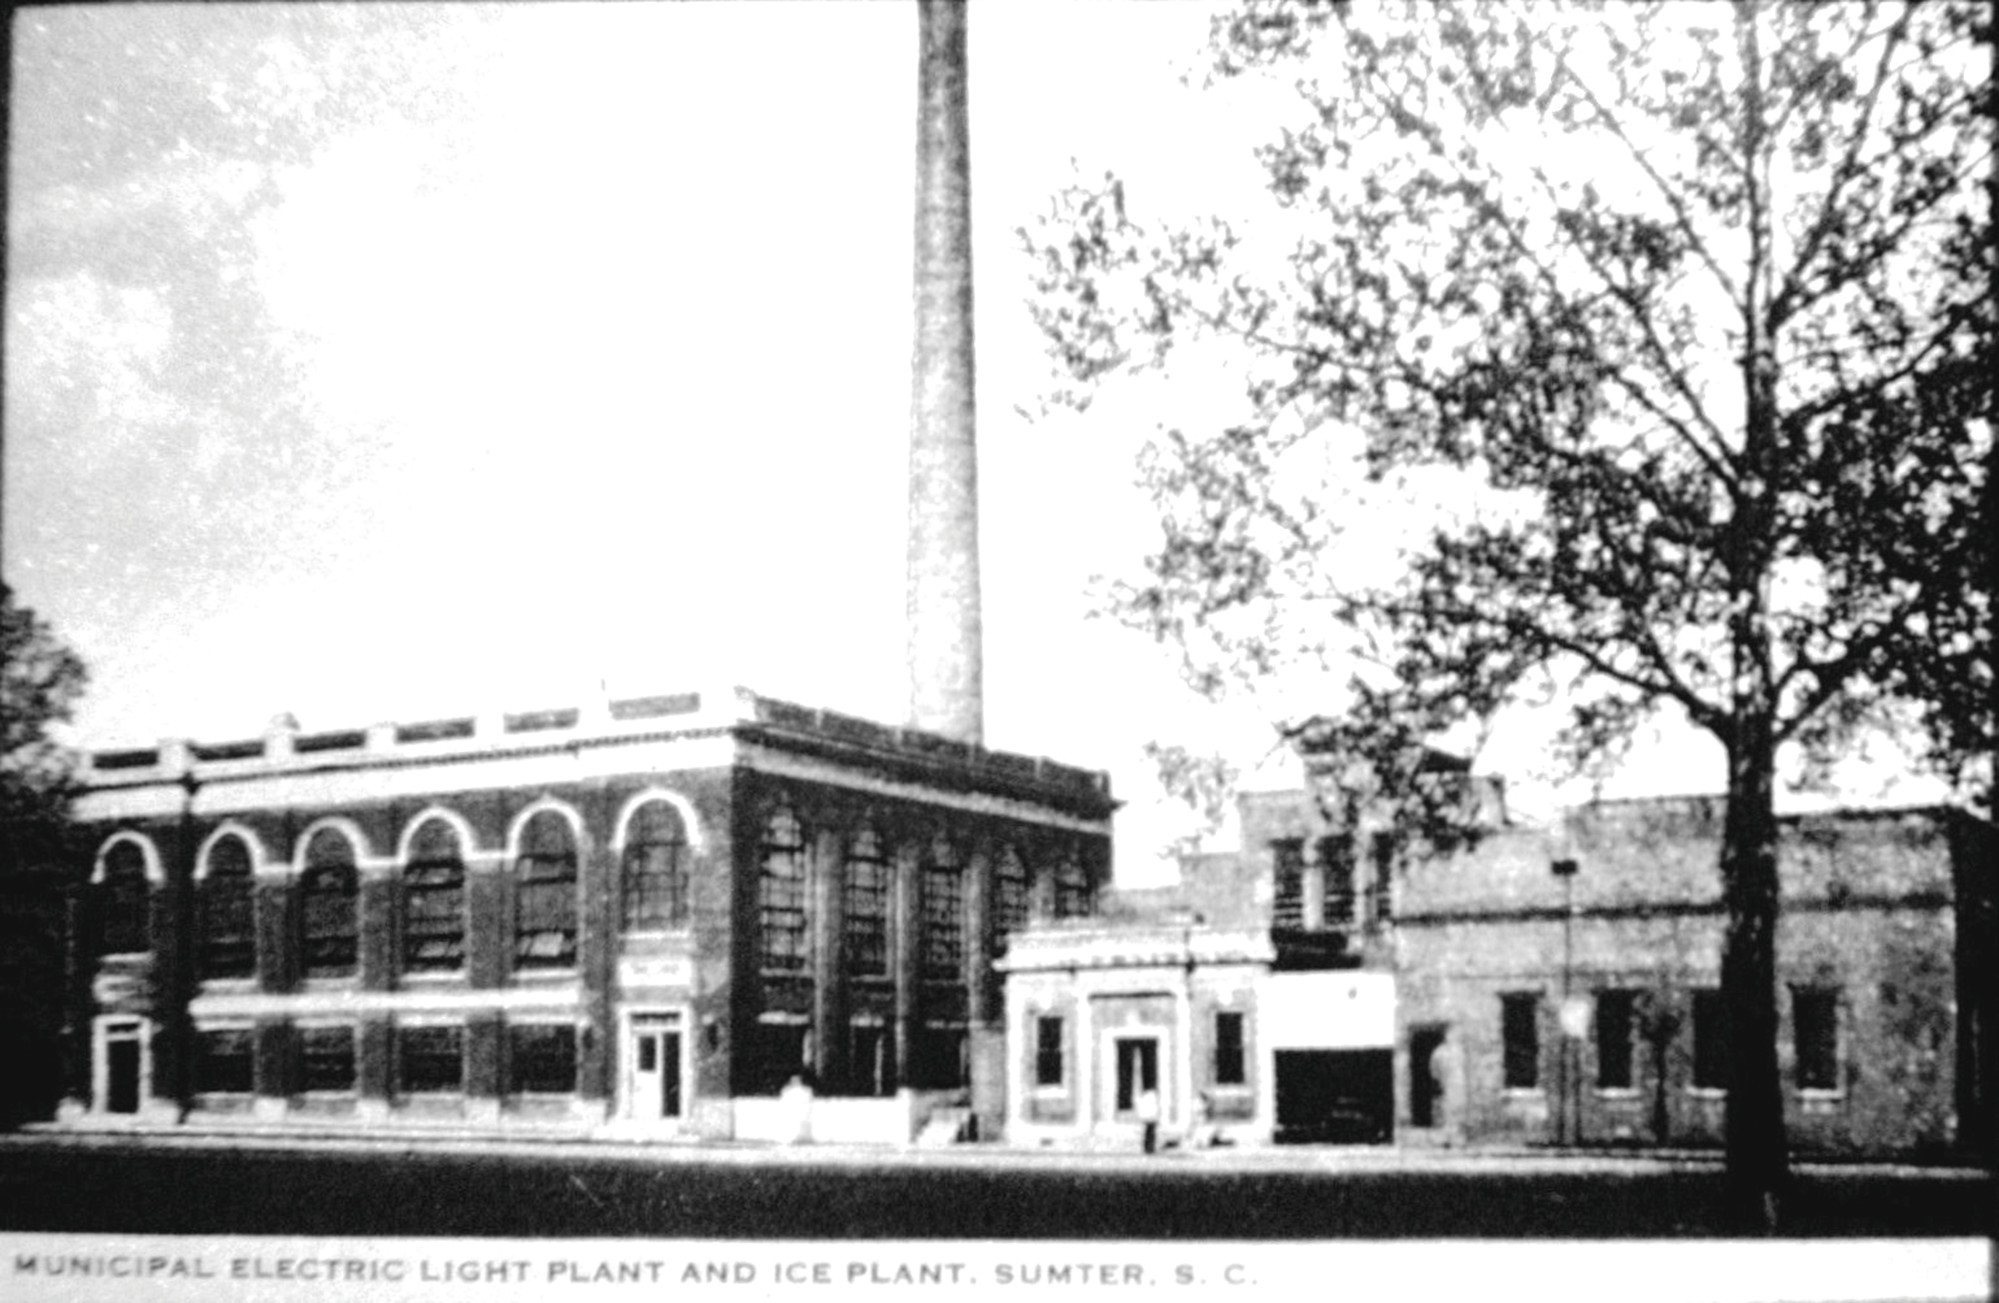 The municipal electric light plant and ice plant is seen in Sumter. Three ice factories produced 61 tons of ice, most of which was shipped outside Sumter.